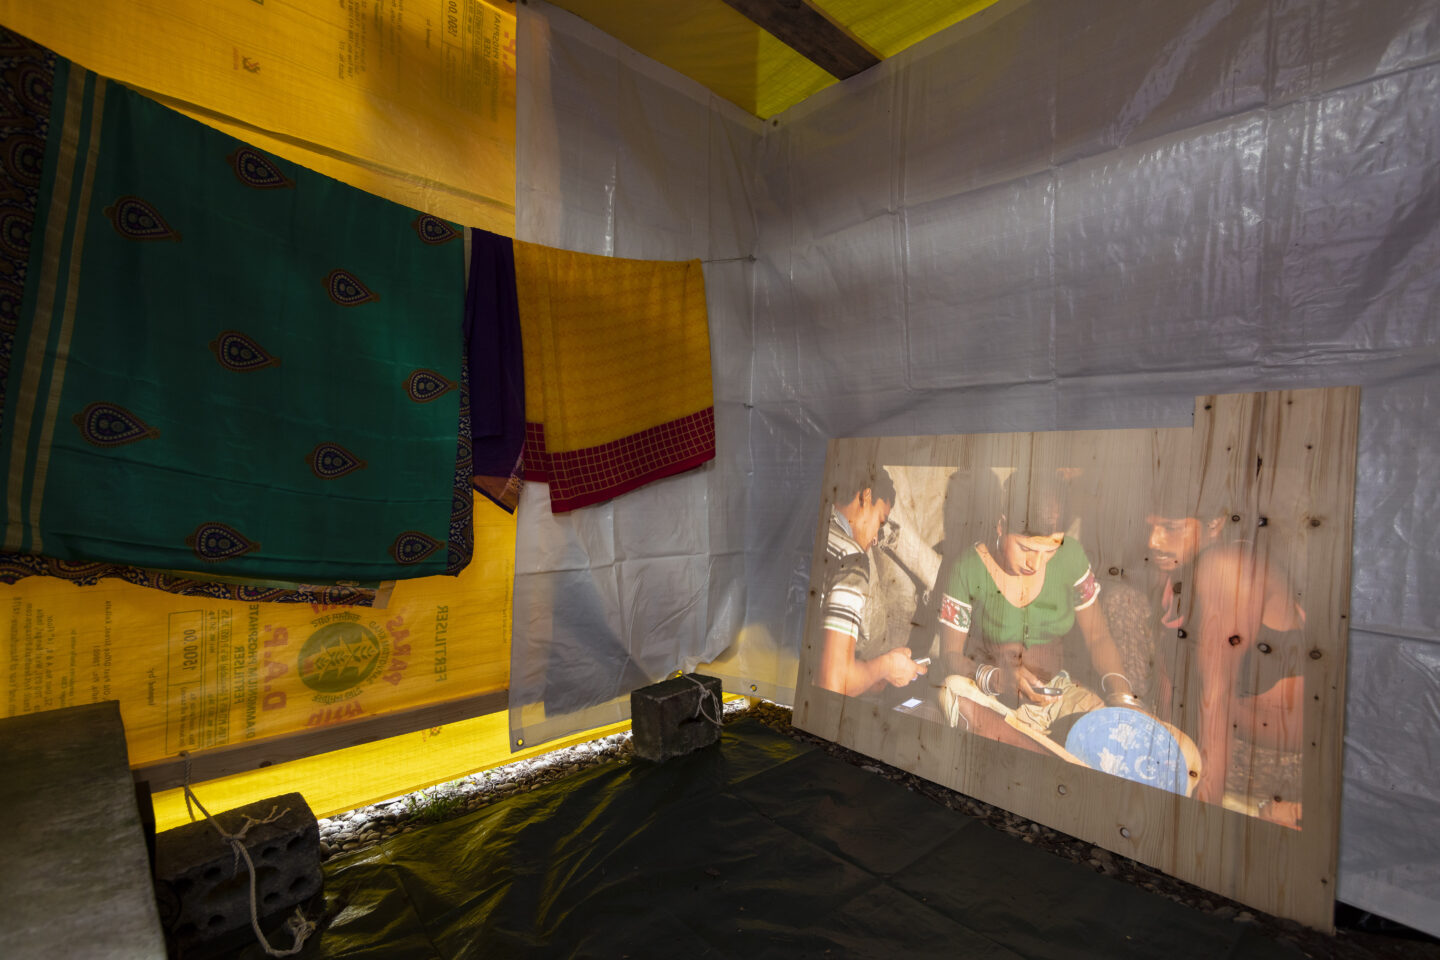 Exhibition View Groupshow «On Fire – Vulnerable Footage ; view on Shayok Mukhopadhyay, Green Room (2019)» at SALTS, Birsefelden, Basel, 2019 / Photo: Gunnar Meier / Courtesy: the artist, Basler Dokumentartage and SALTS